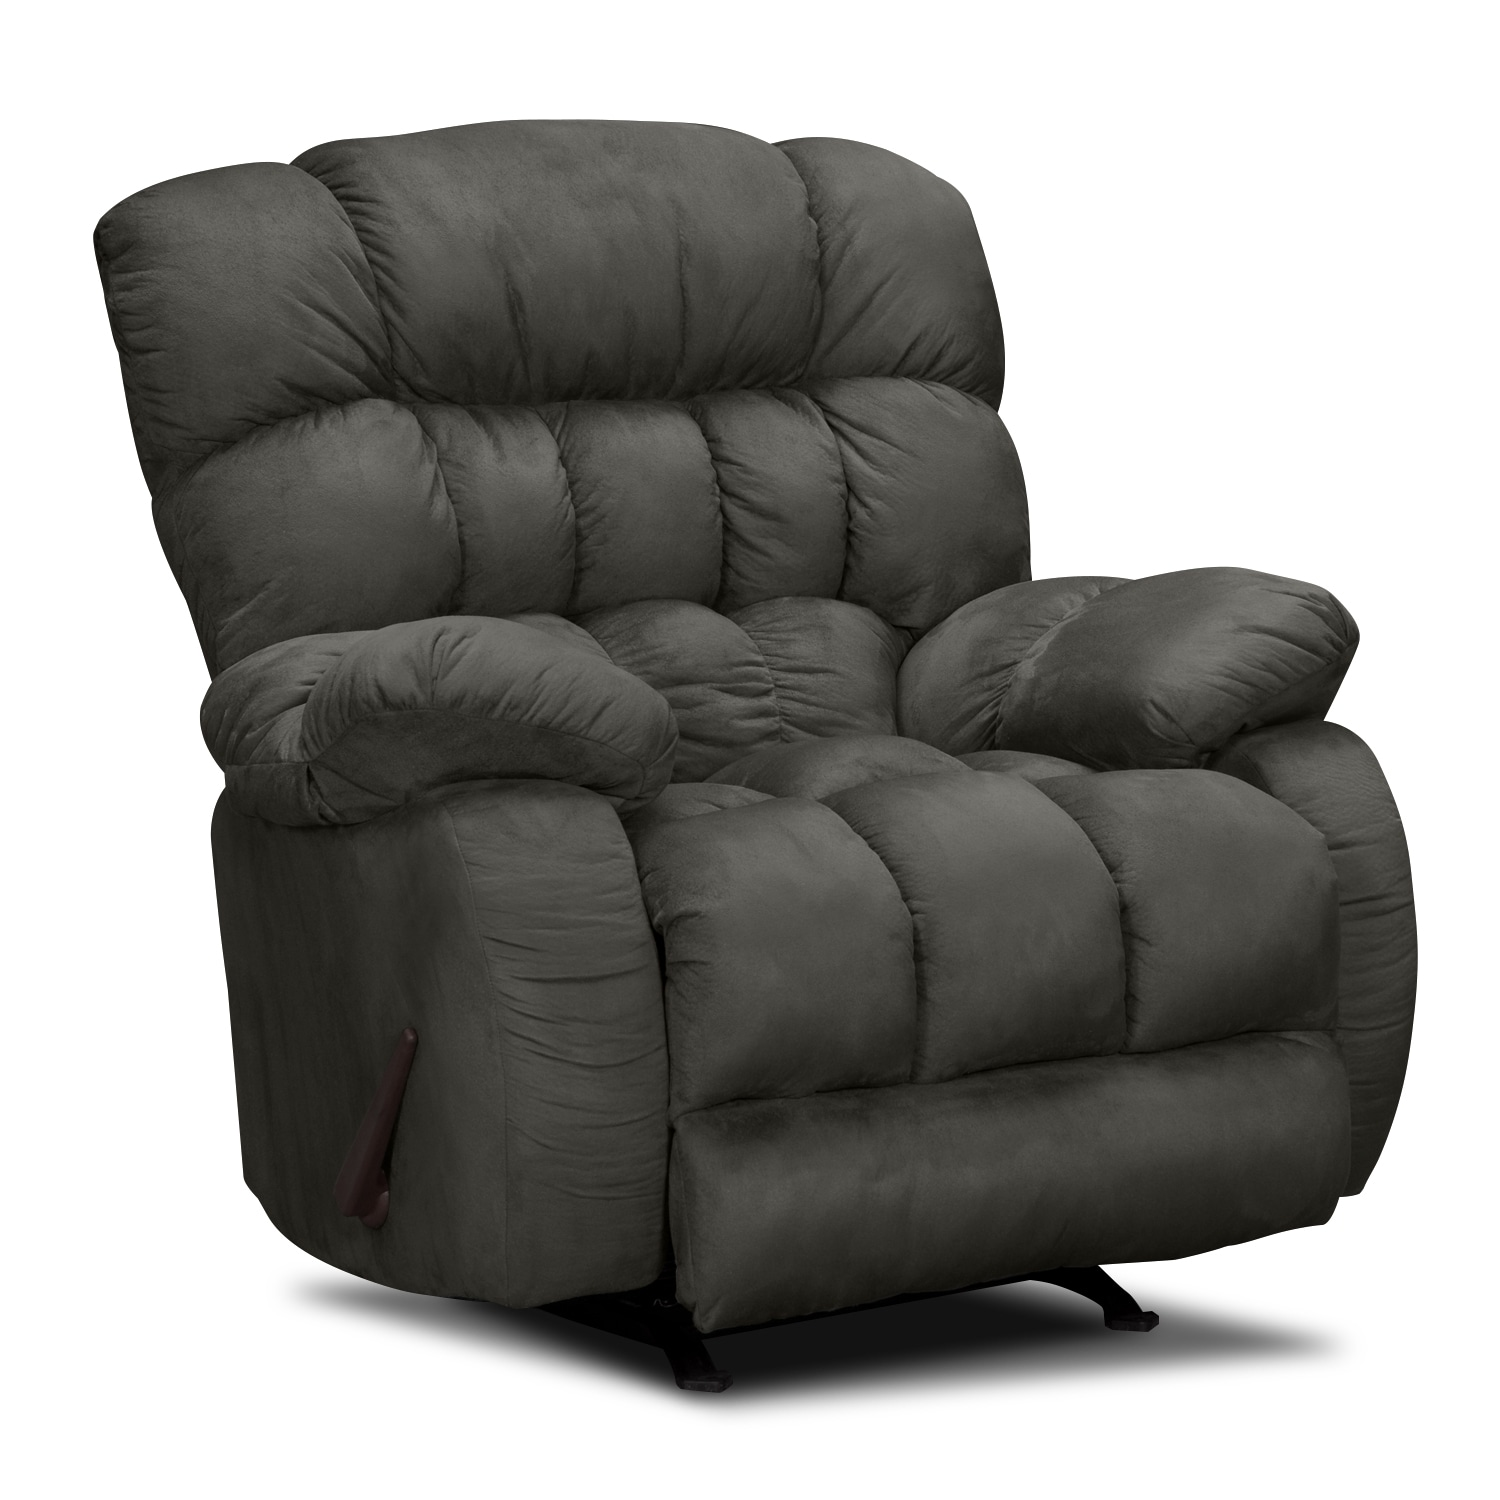 Sonic Rocker Recliner Graphite Value City Furniture